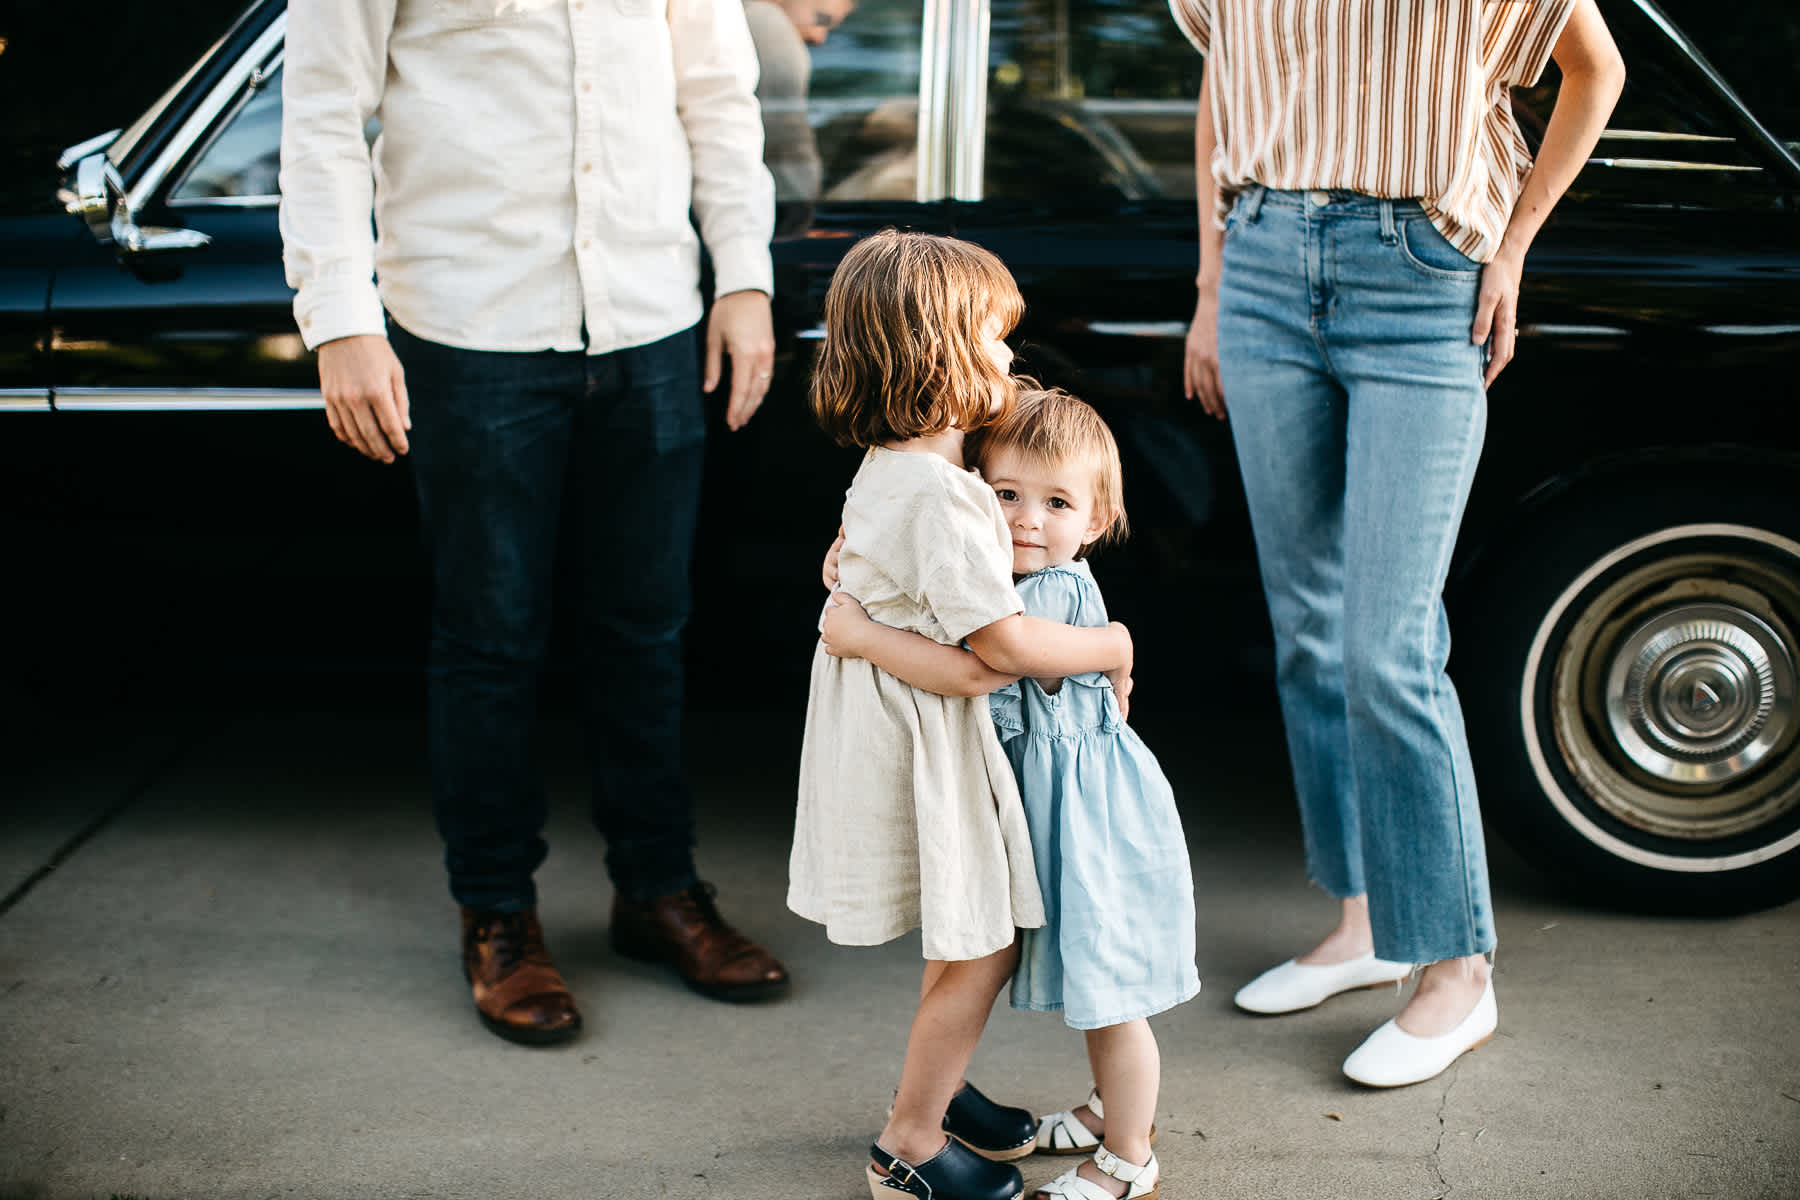 lime-ridge-concord-mustard-flower-vintage-car-lifestyle-family-session-5